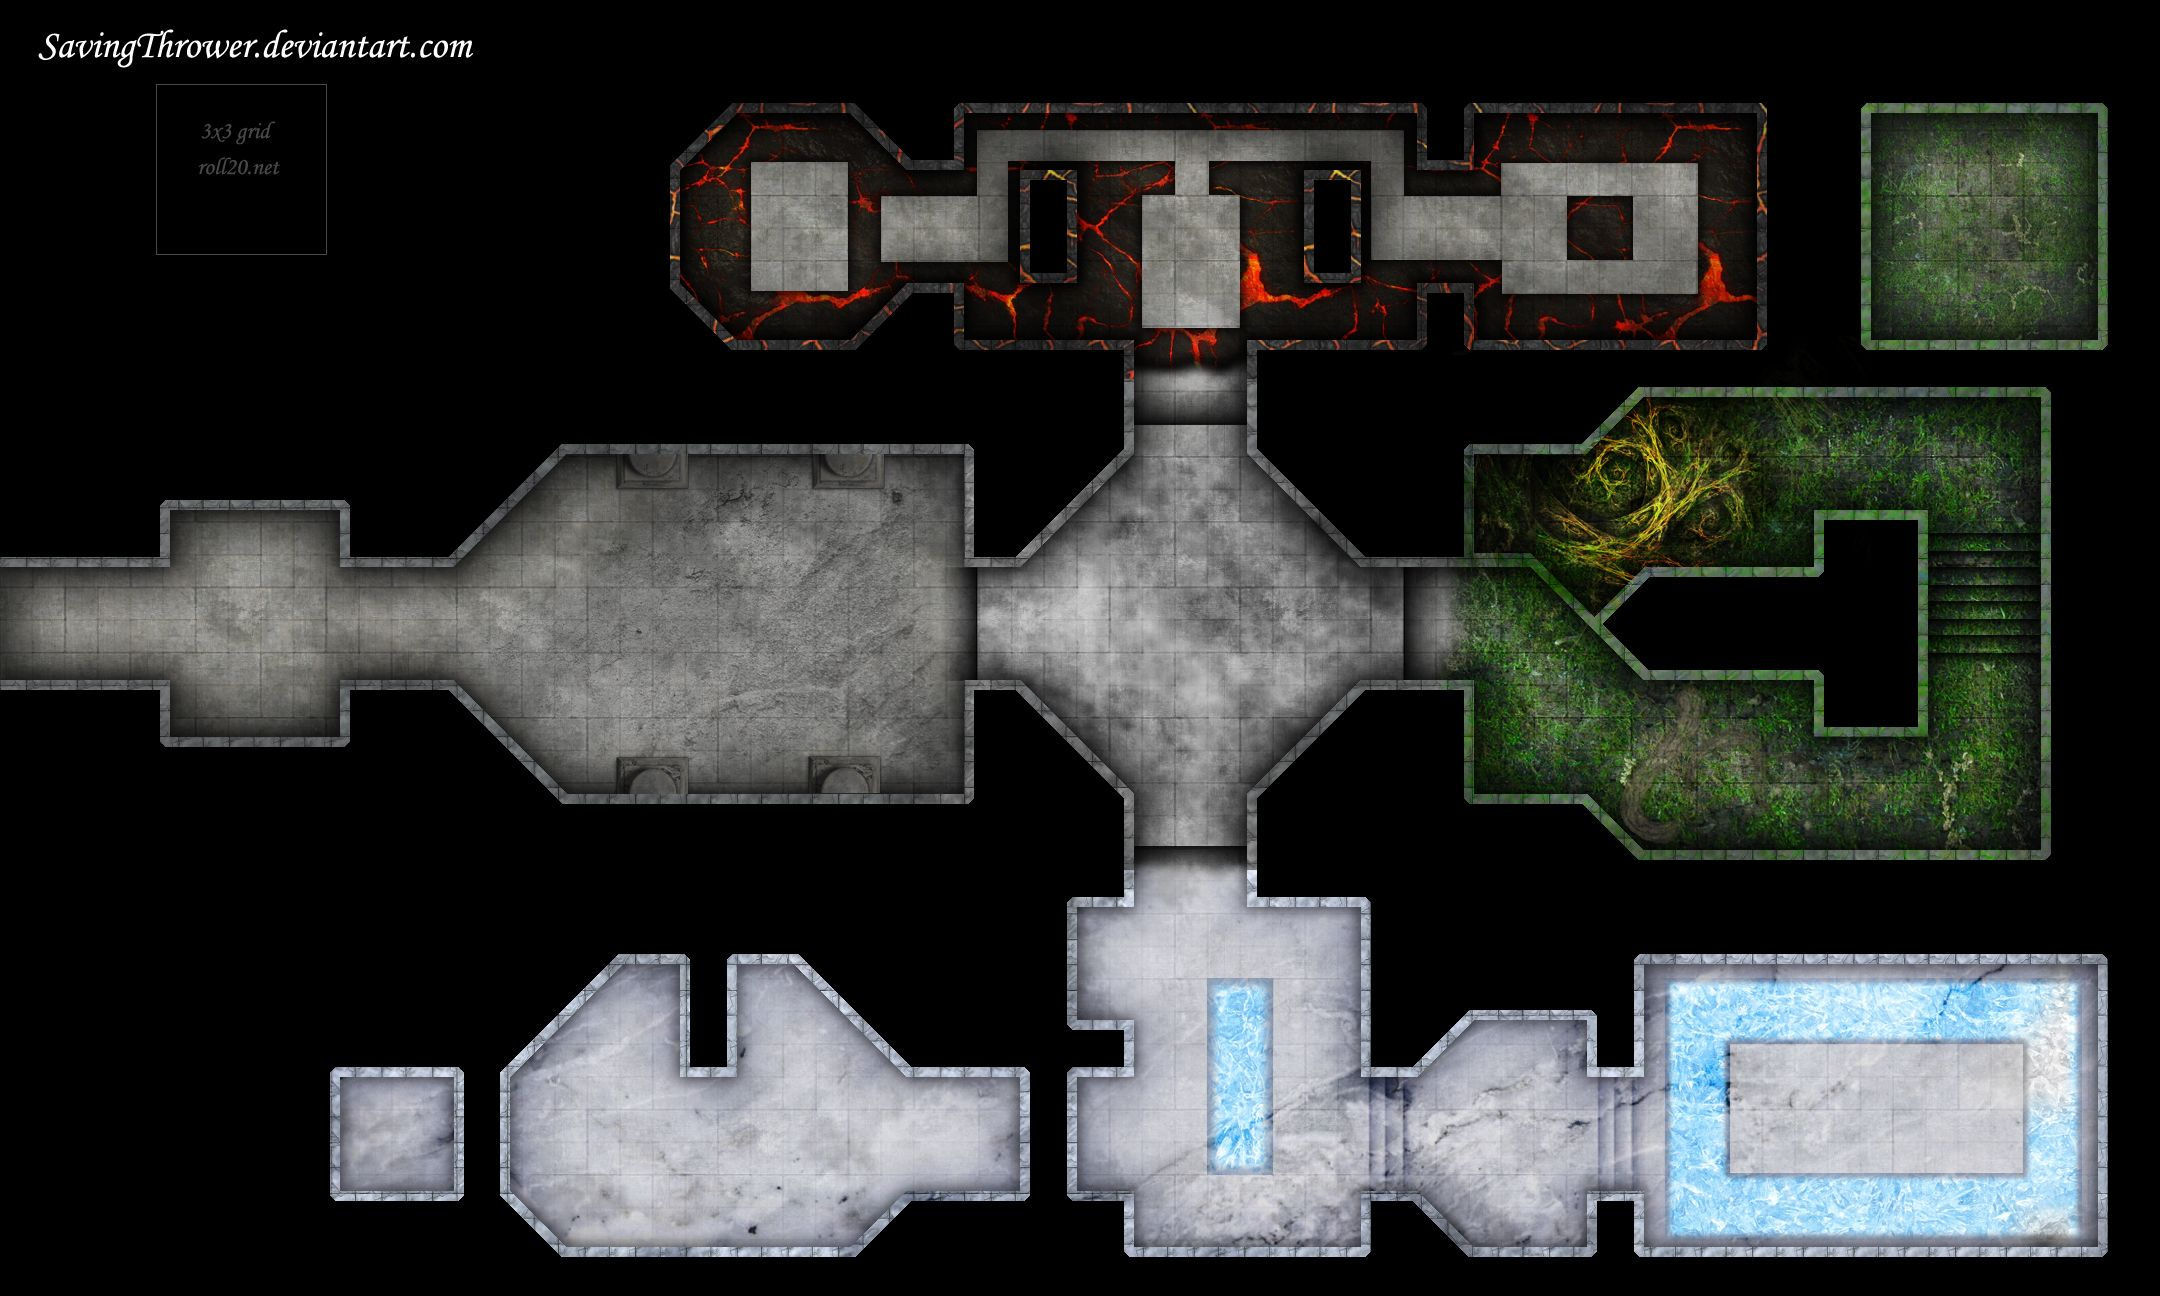 Clean elemental dungeon battlemap for roll20 by